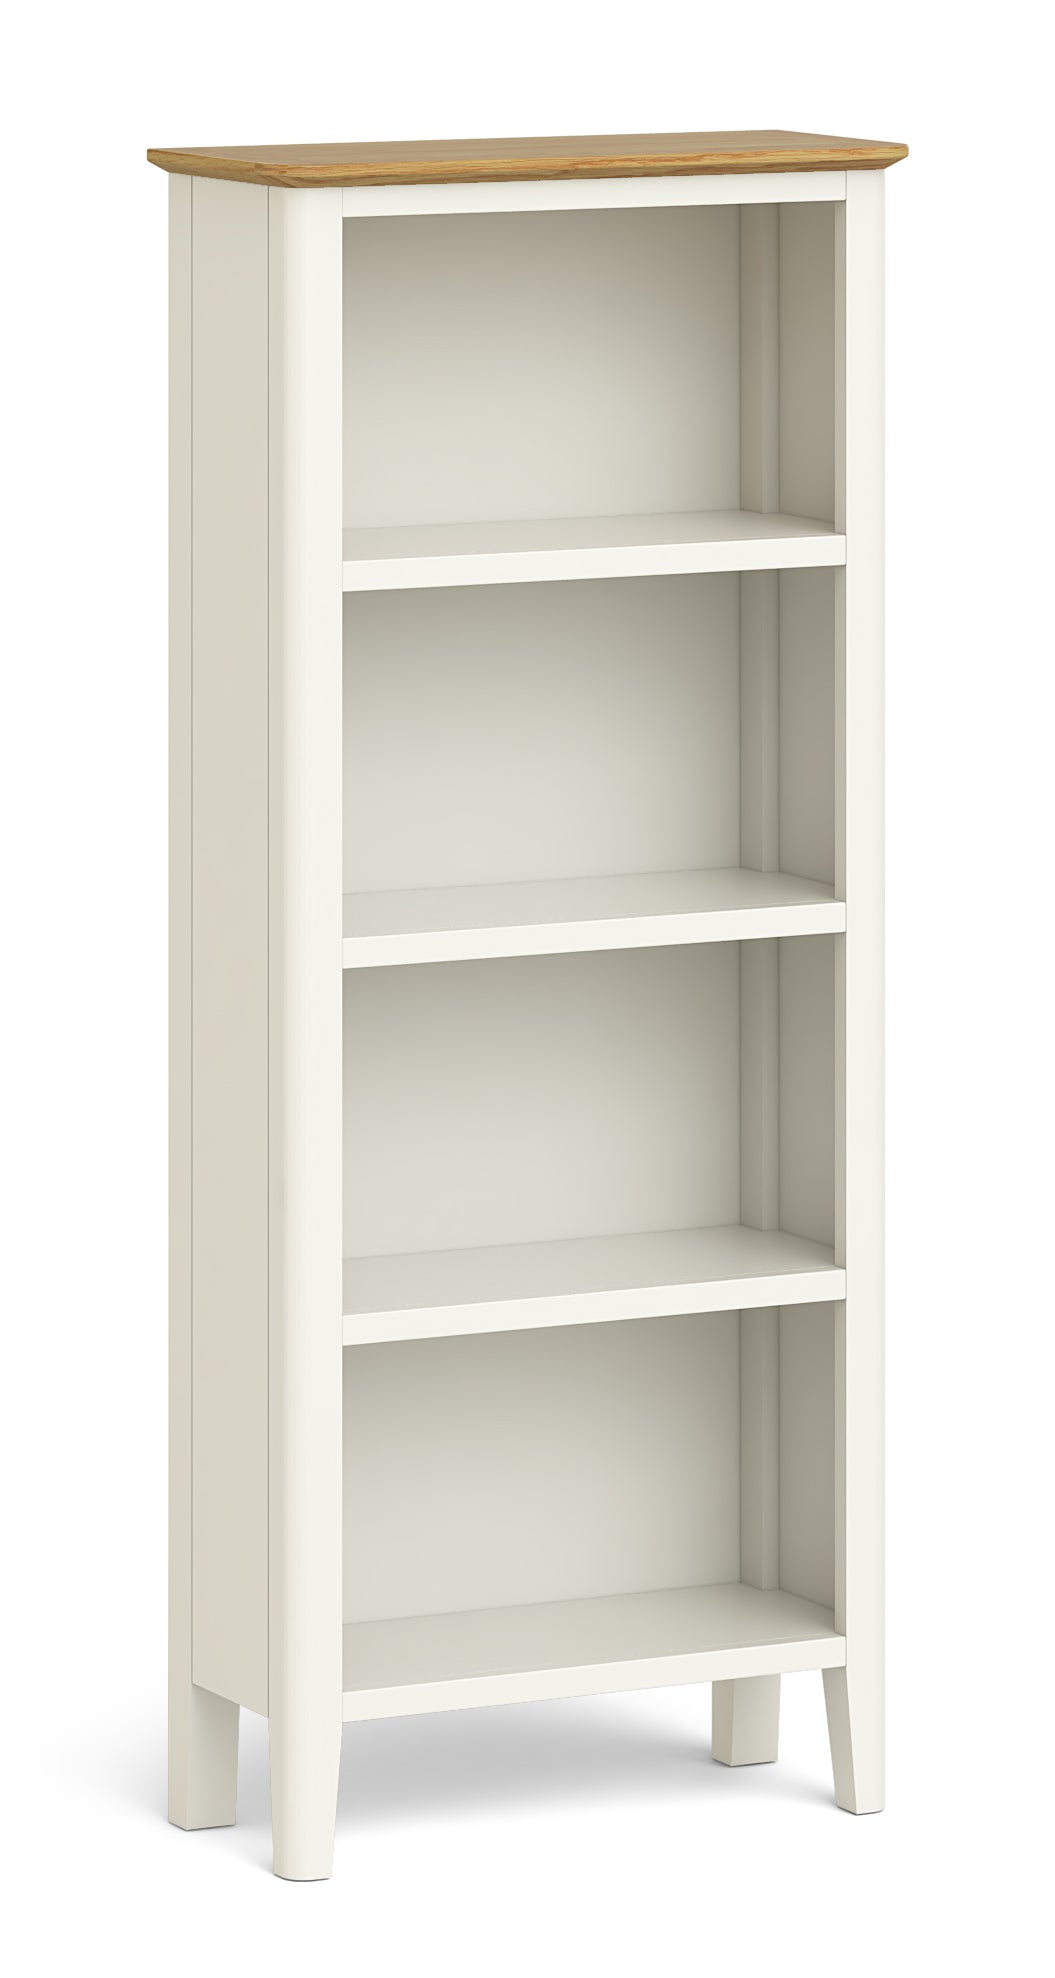 Bloxholm Bookcases - Painted